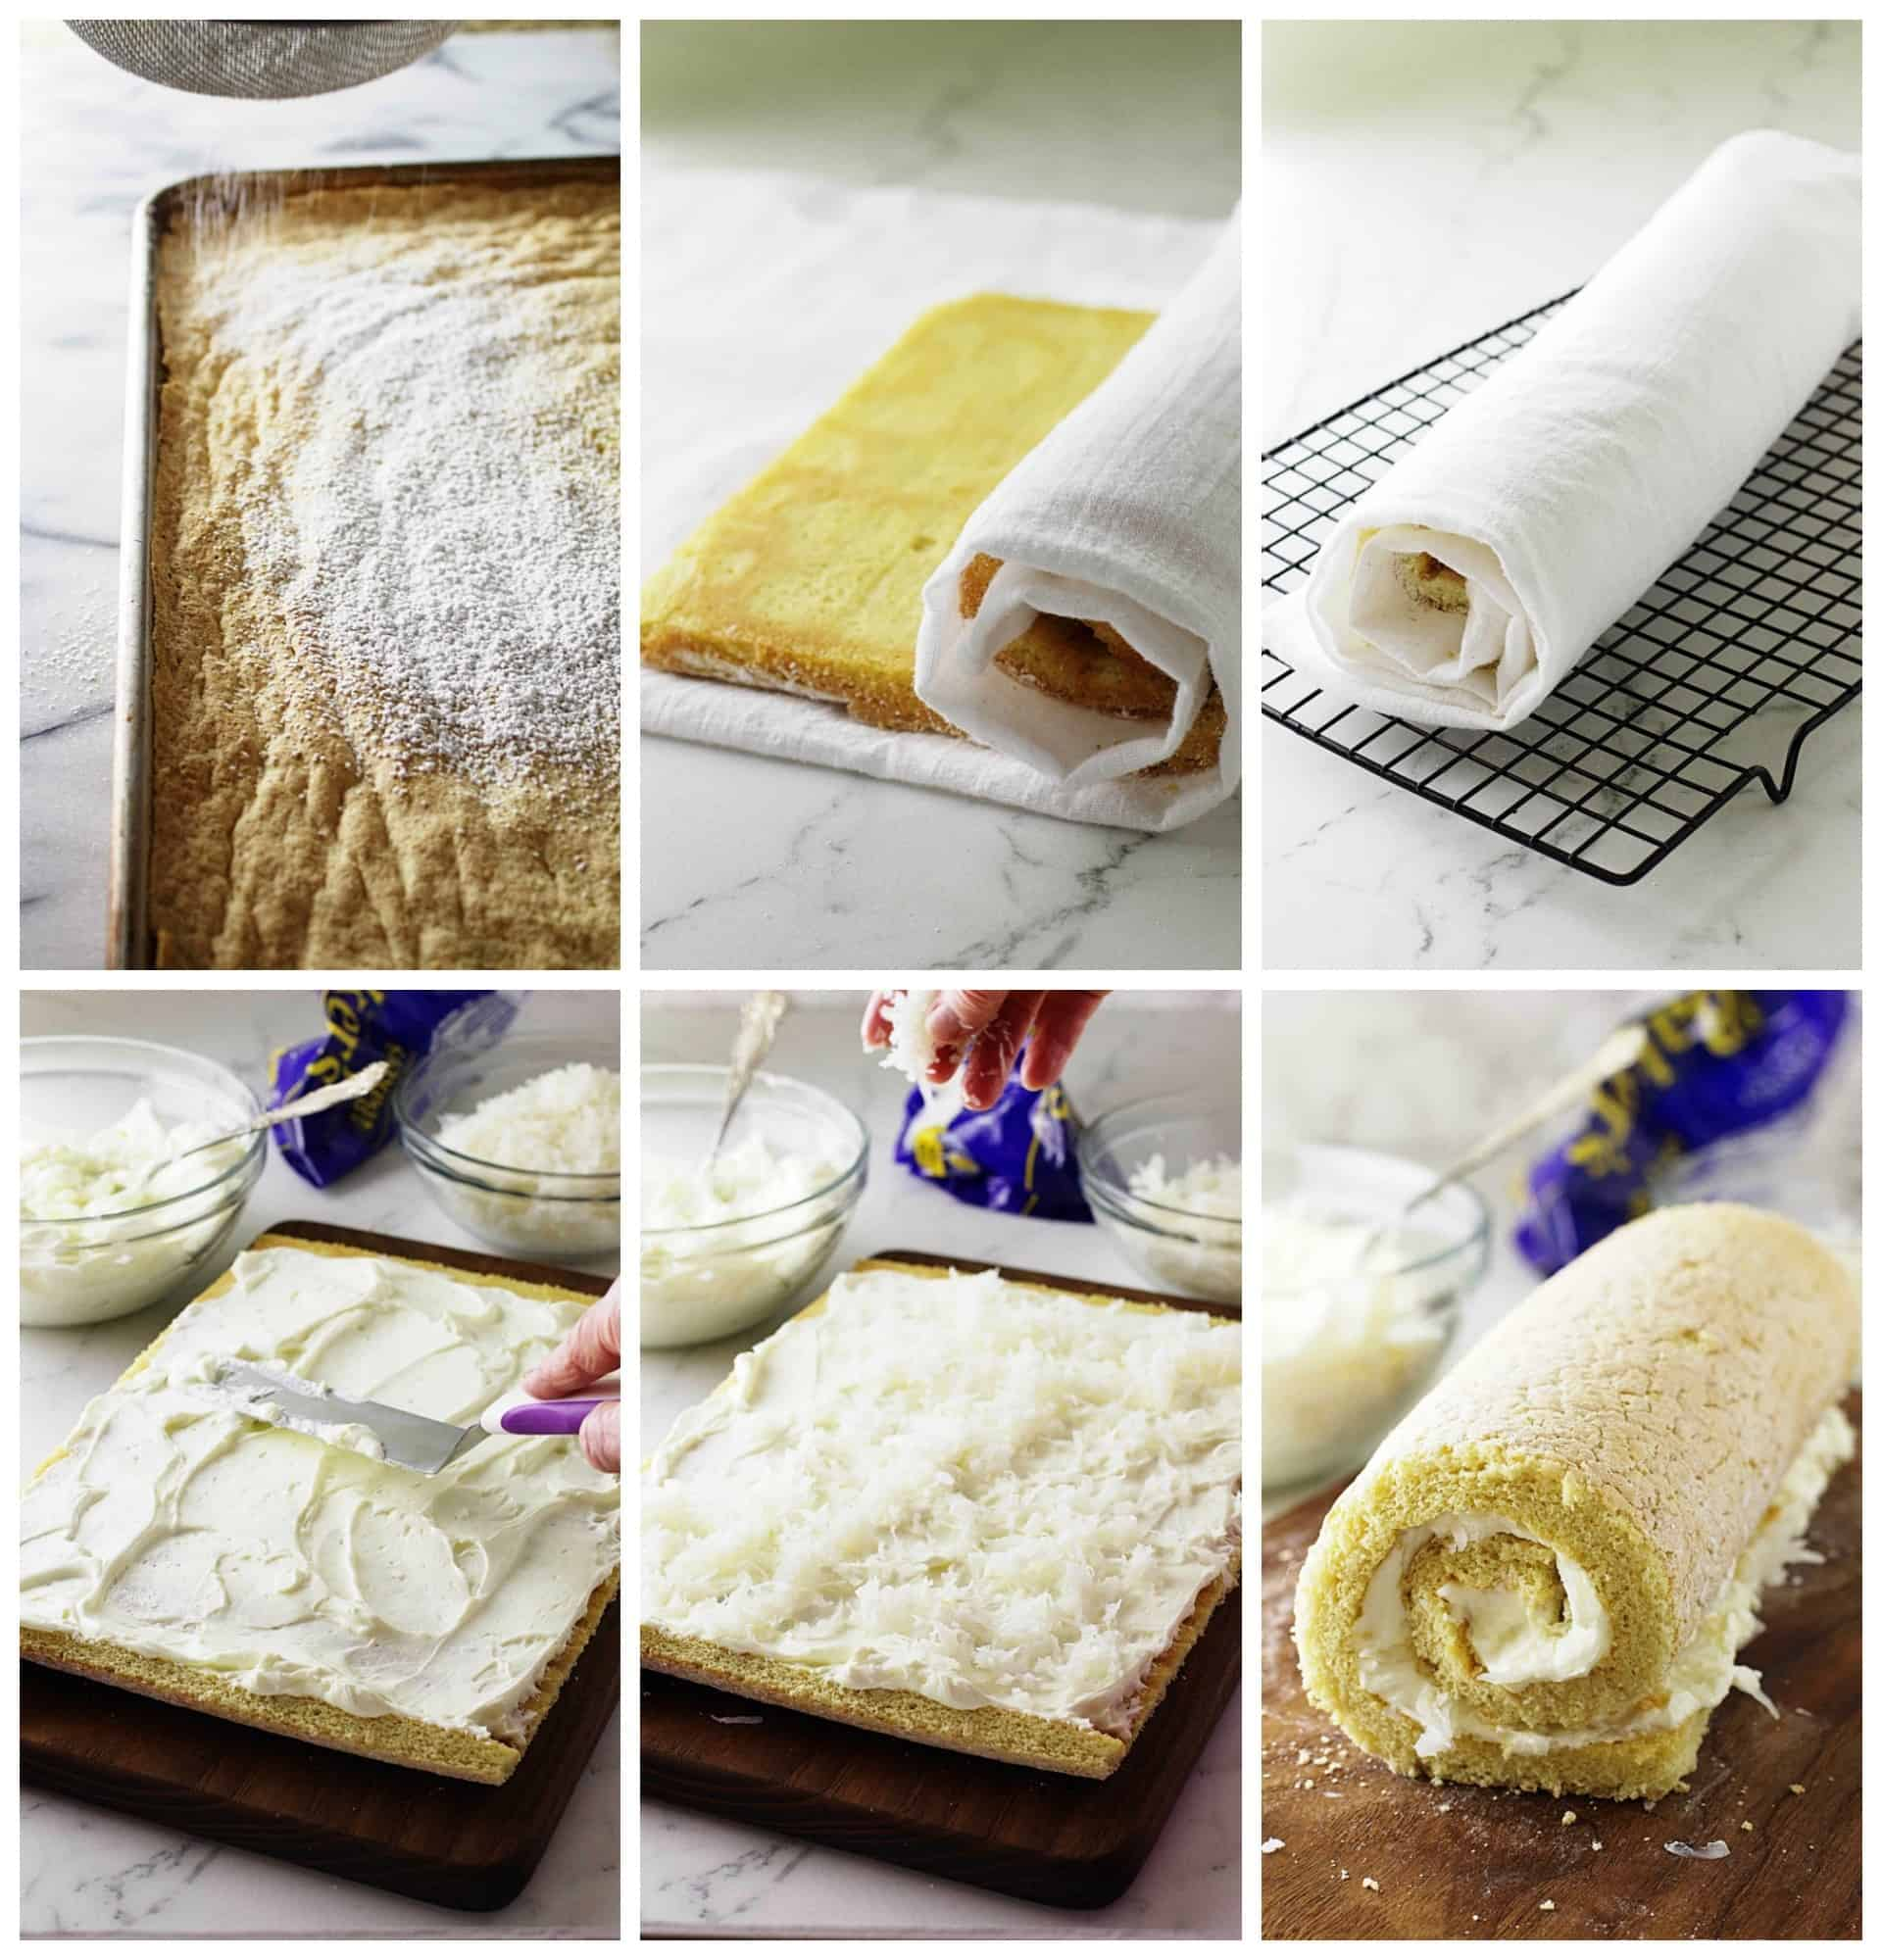 How To Make A Cake Roll Without Cracking